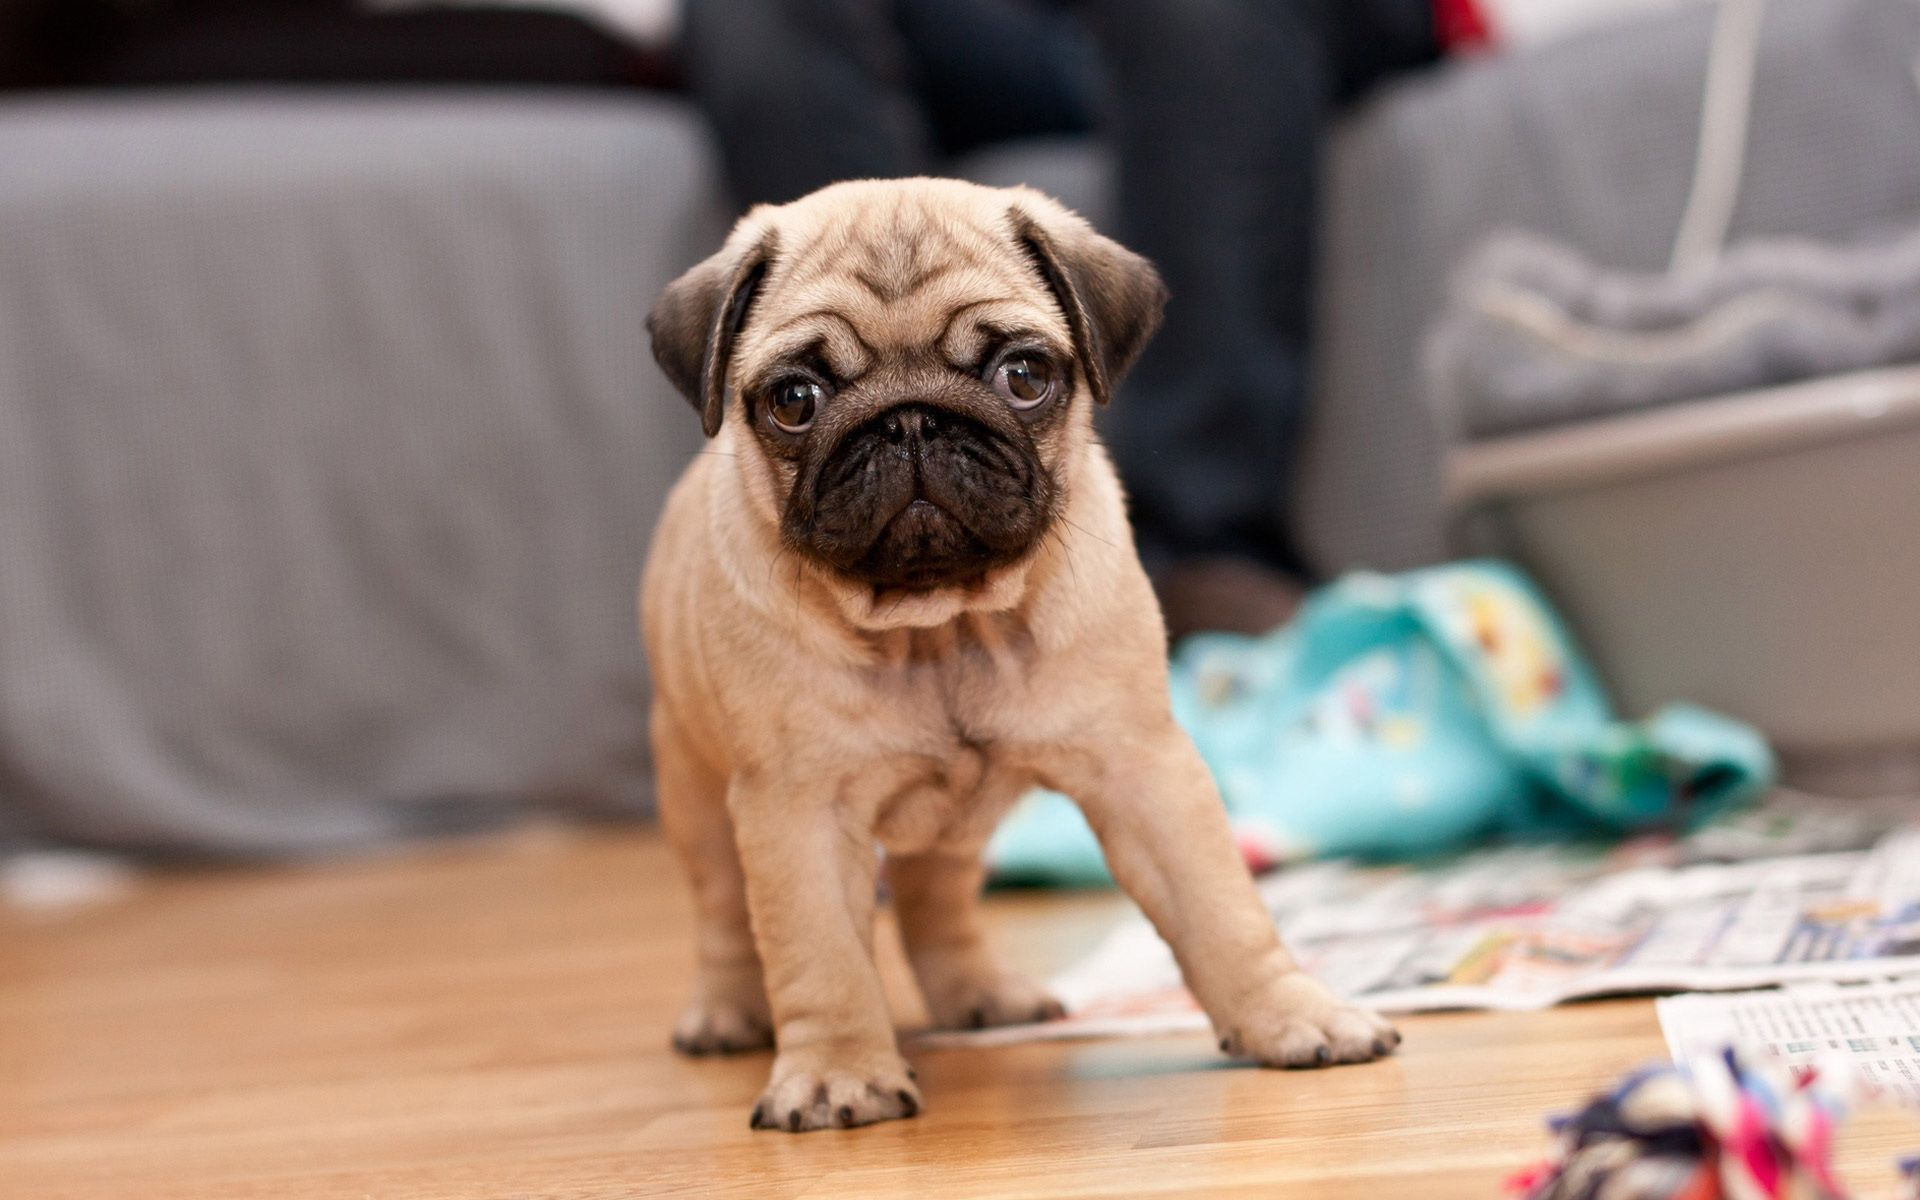 Pug Puppy Hd Wallpaper Free,Download,HD Wallpapers,Dogs